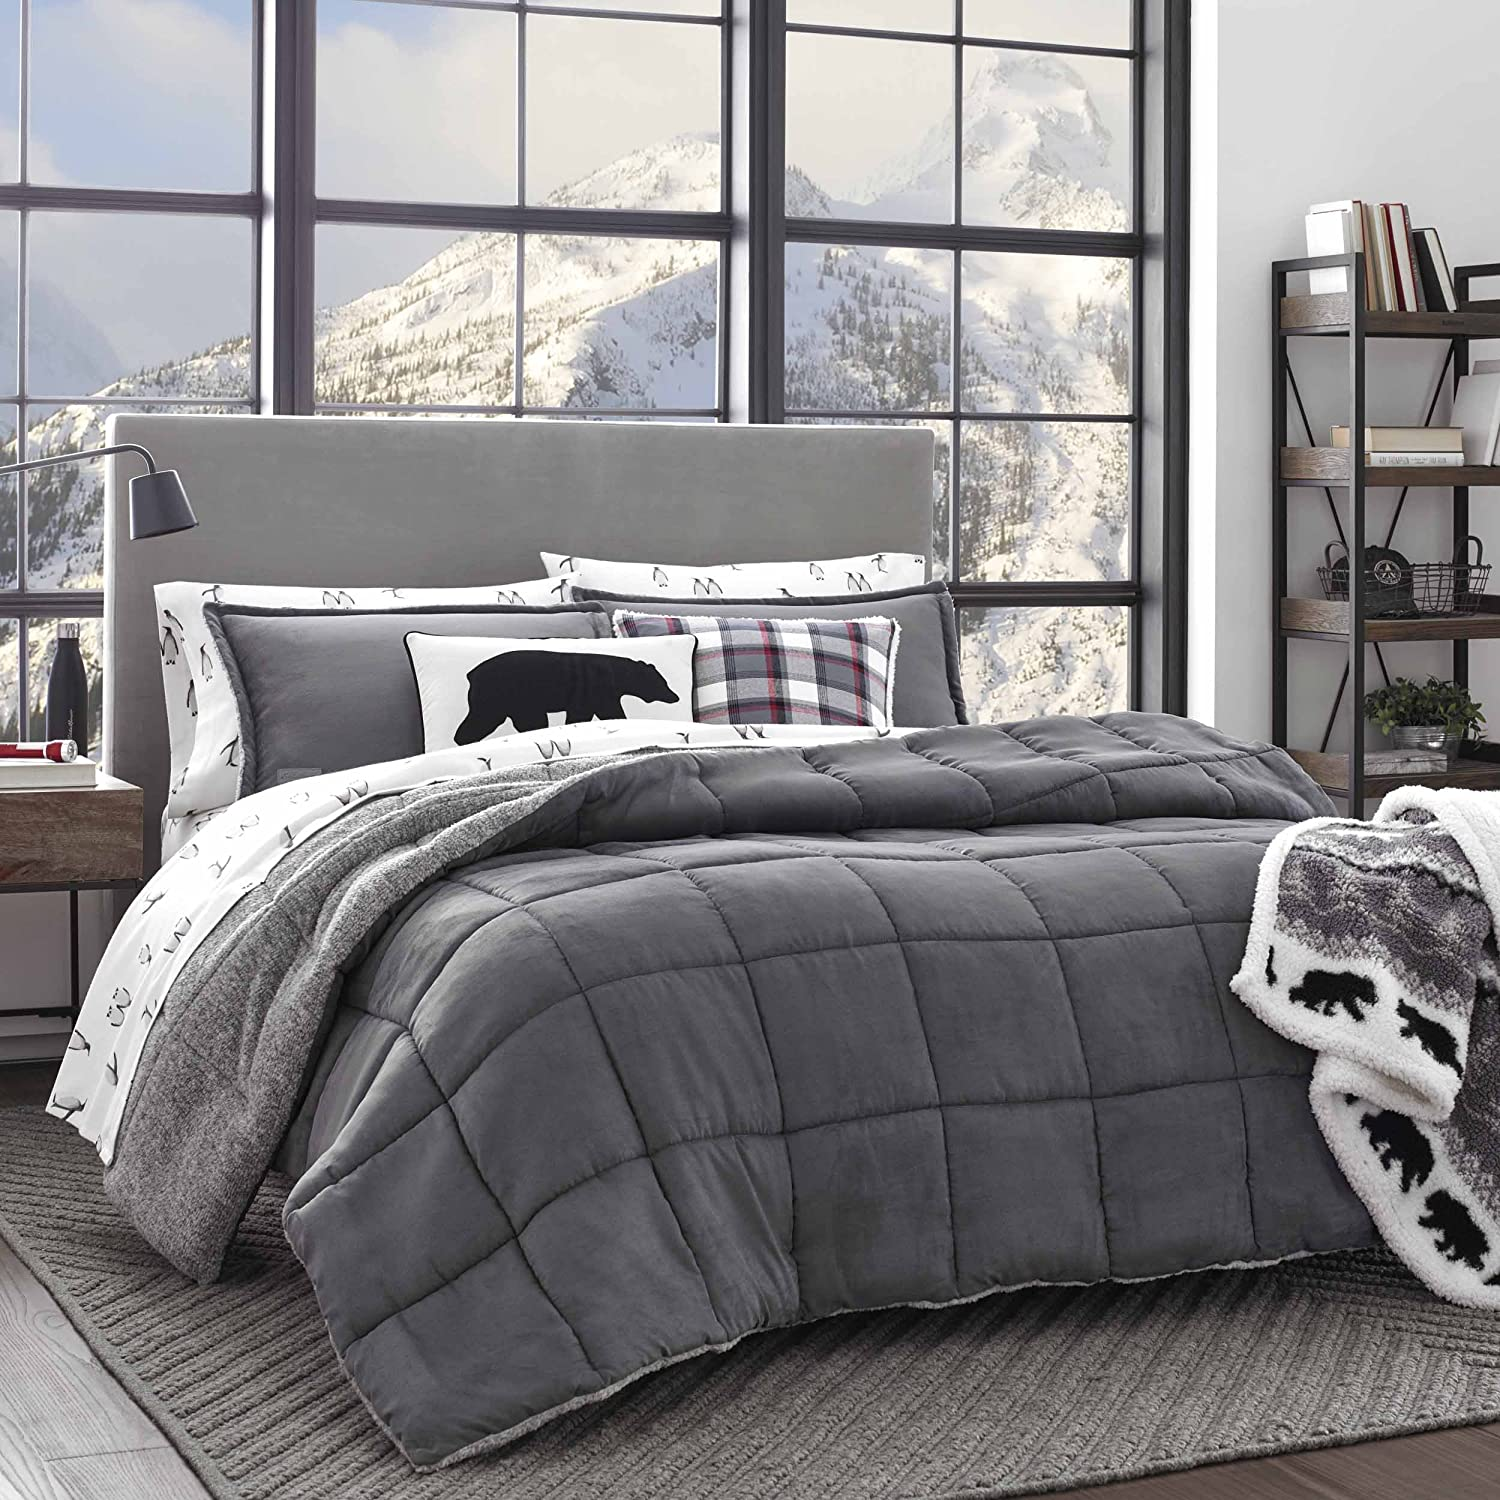 Eddie Bauer Sherwood Comforter Set, Full/Queen, Grey